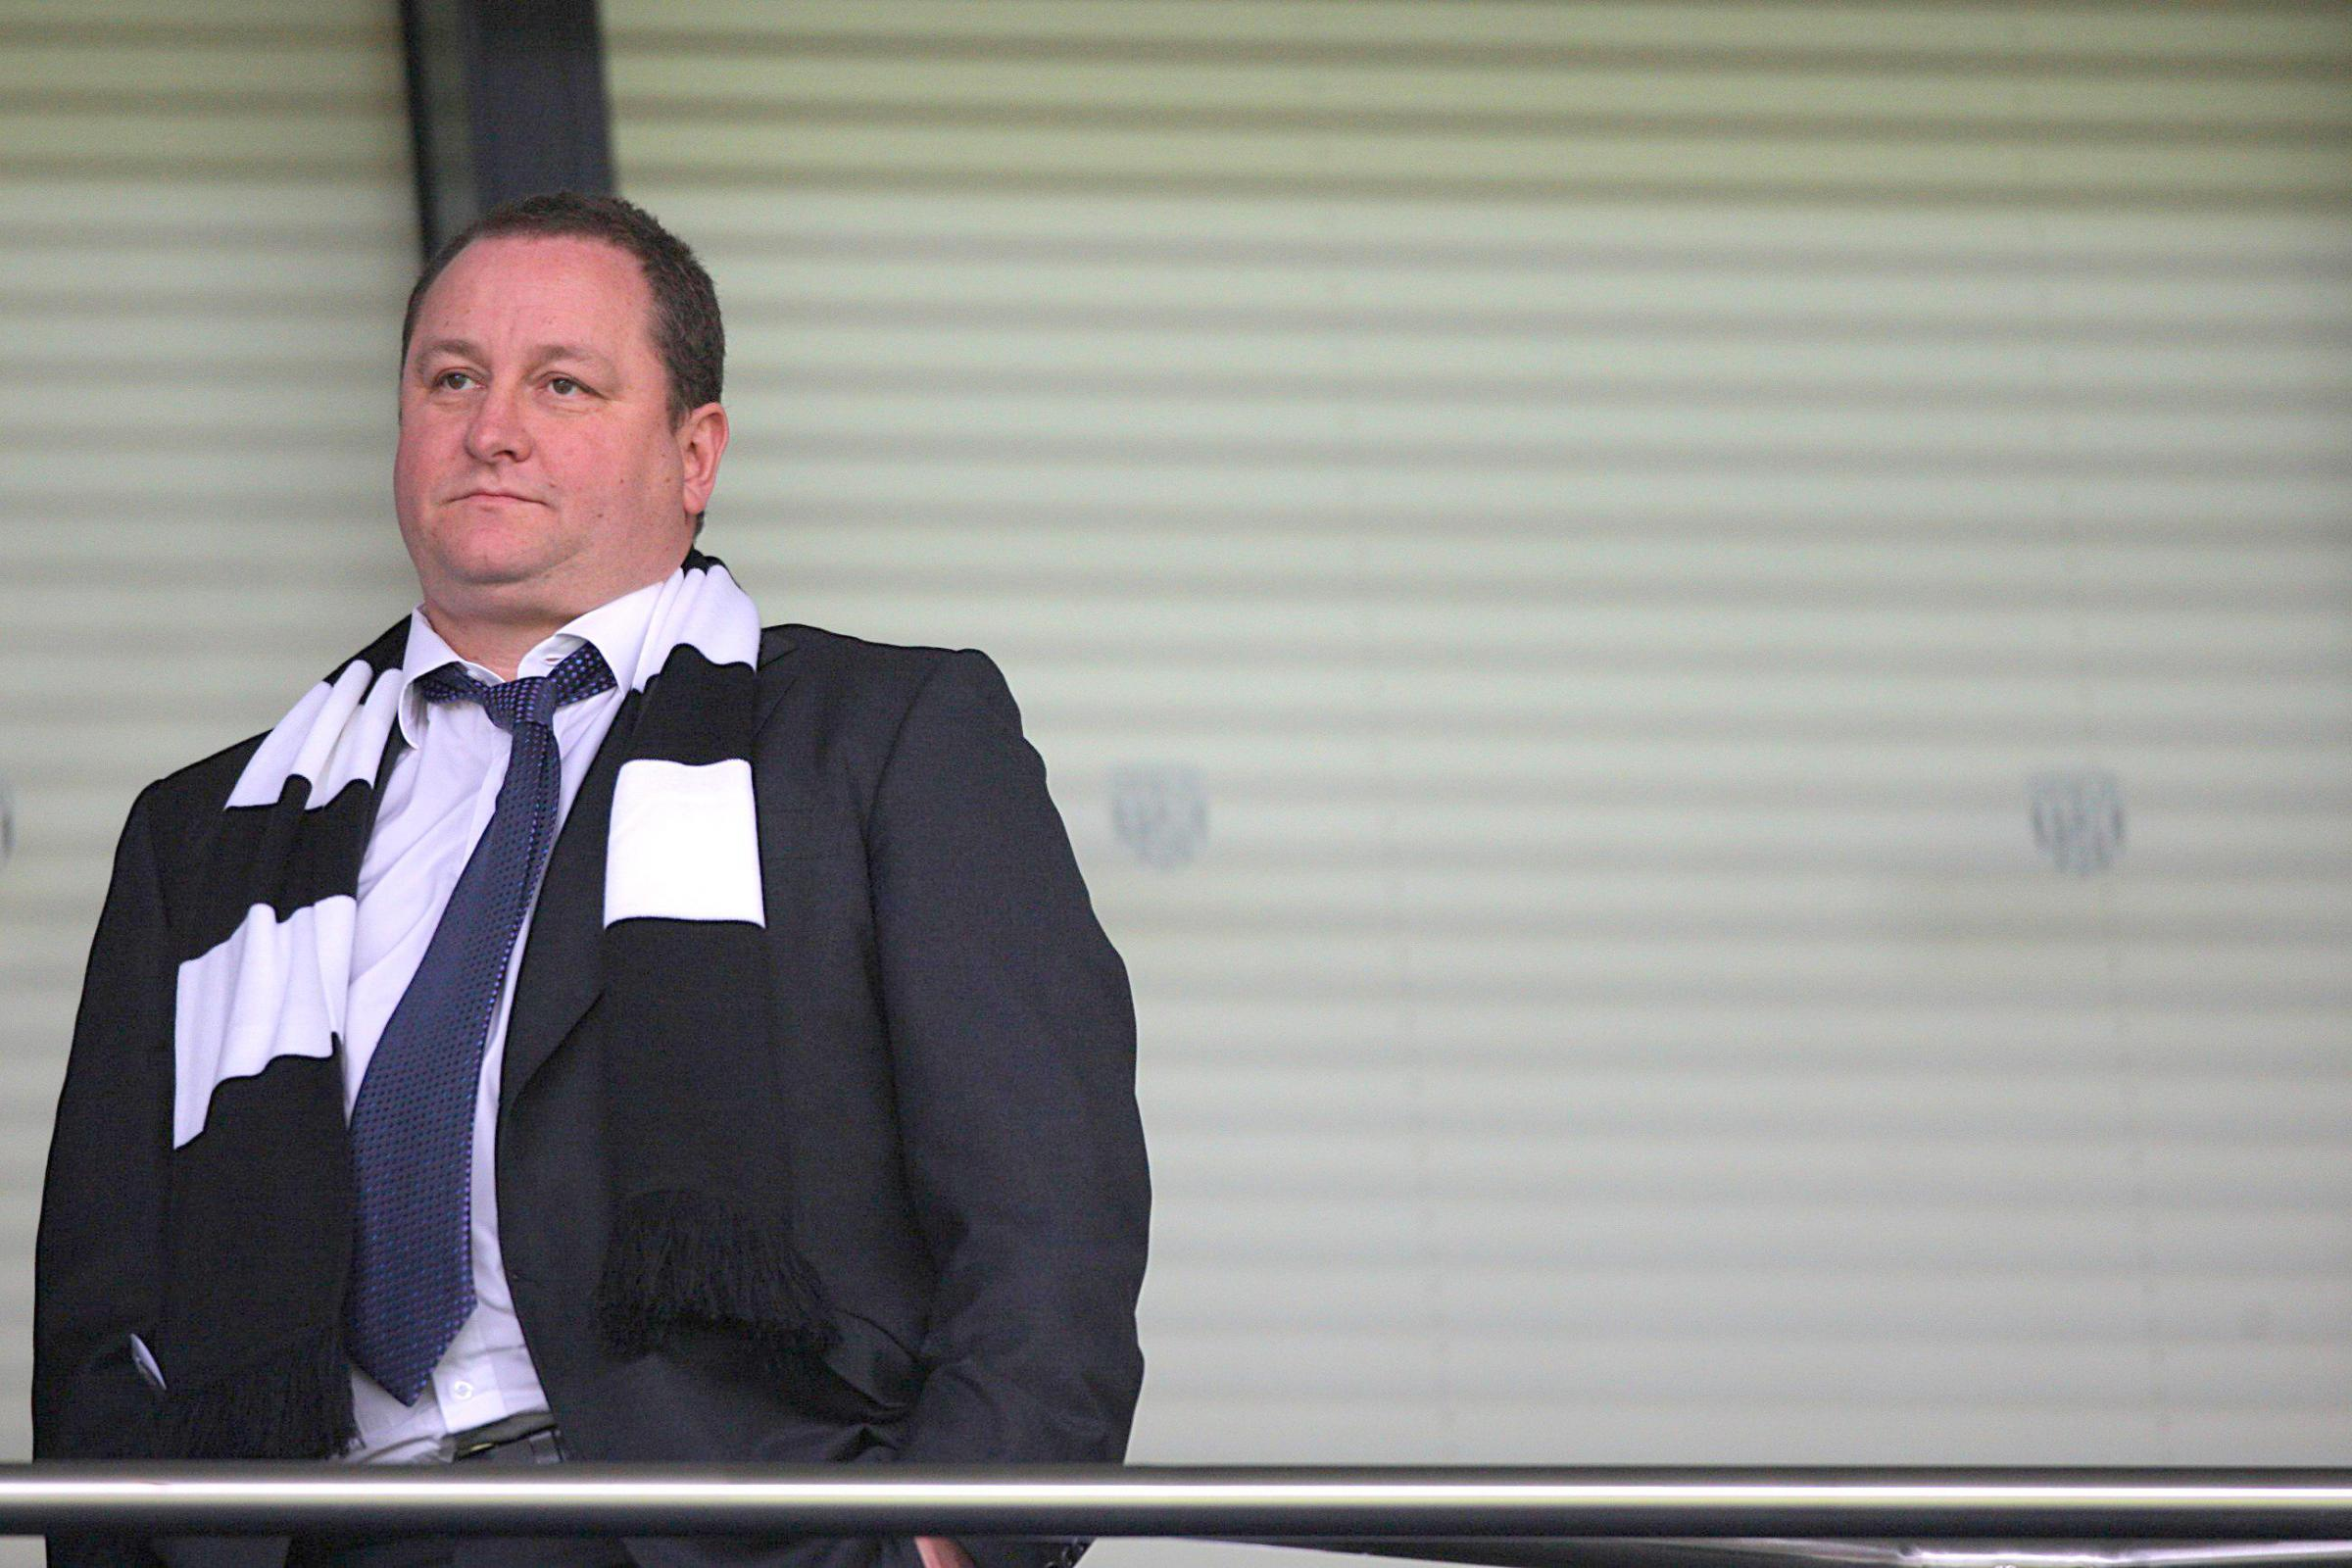 A bonus package for Mike Ashley, which would have been worth £73m at Sports Direct's current share price of 907p, was due to be put to a vote on Friday.